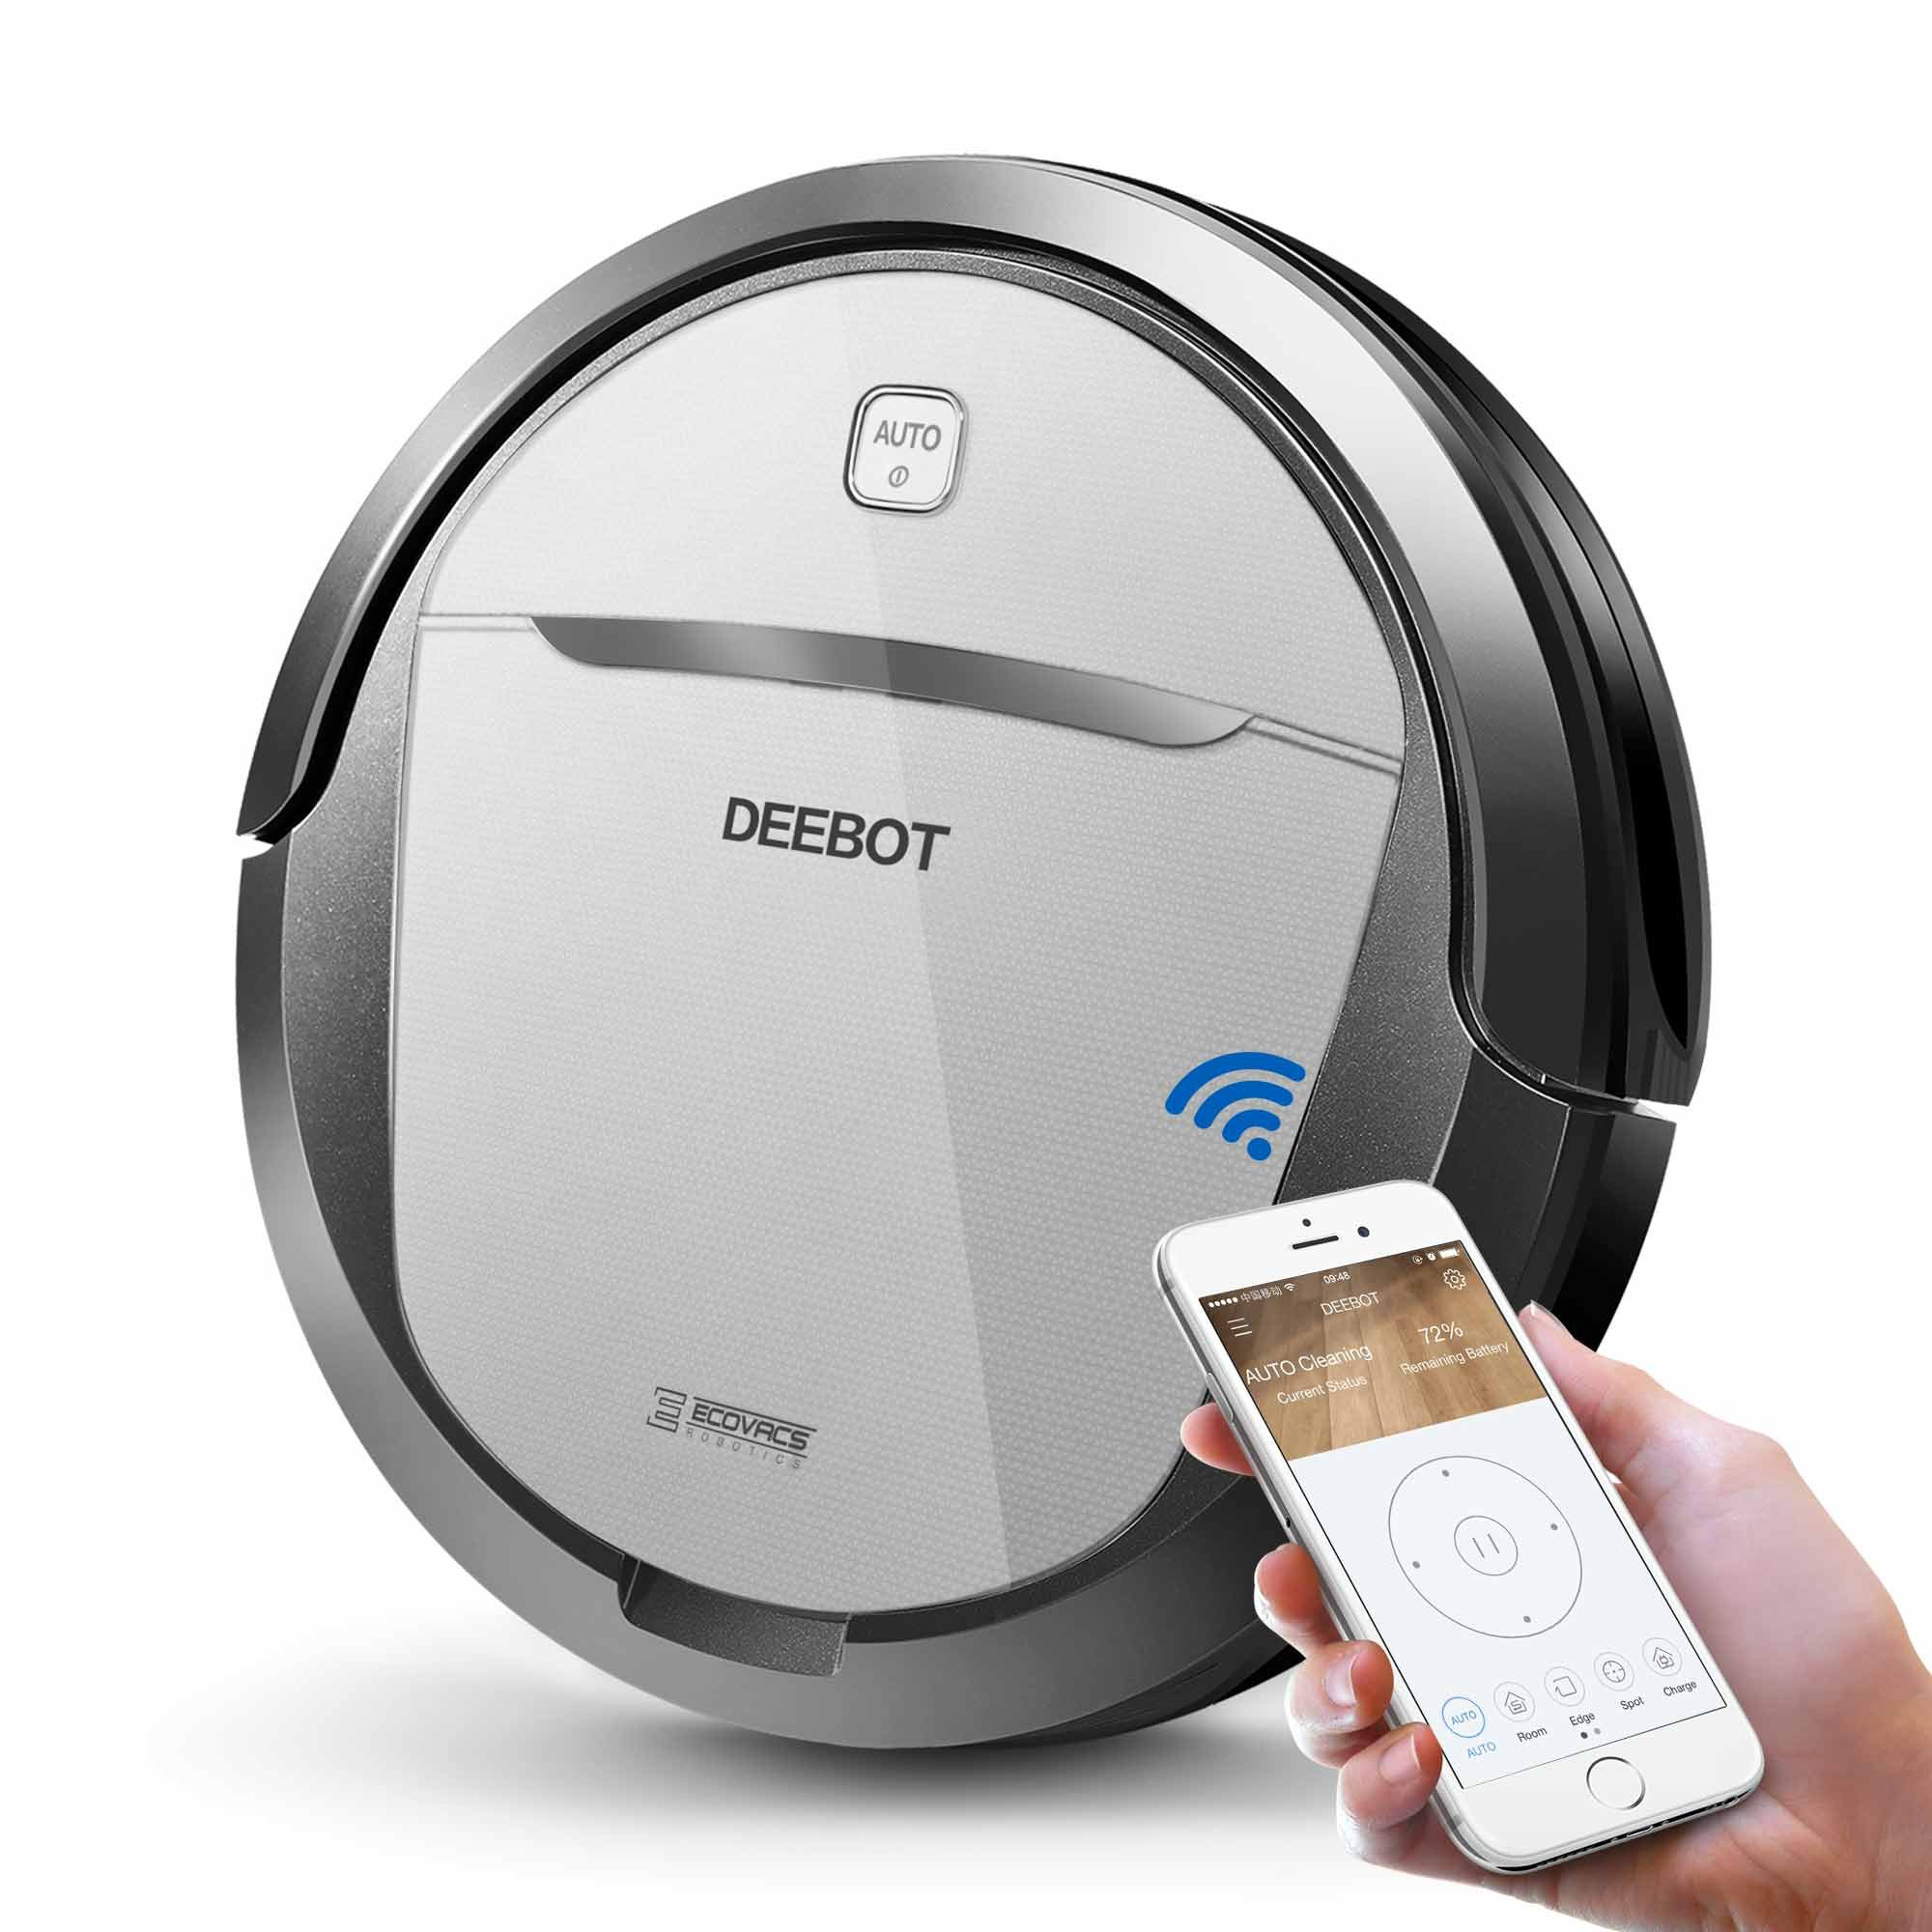 ECOVACS DEEBOT M80 Pro Robot Vacuum Cleaner by ECOVACS